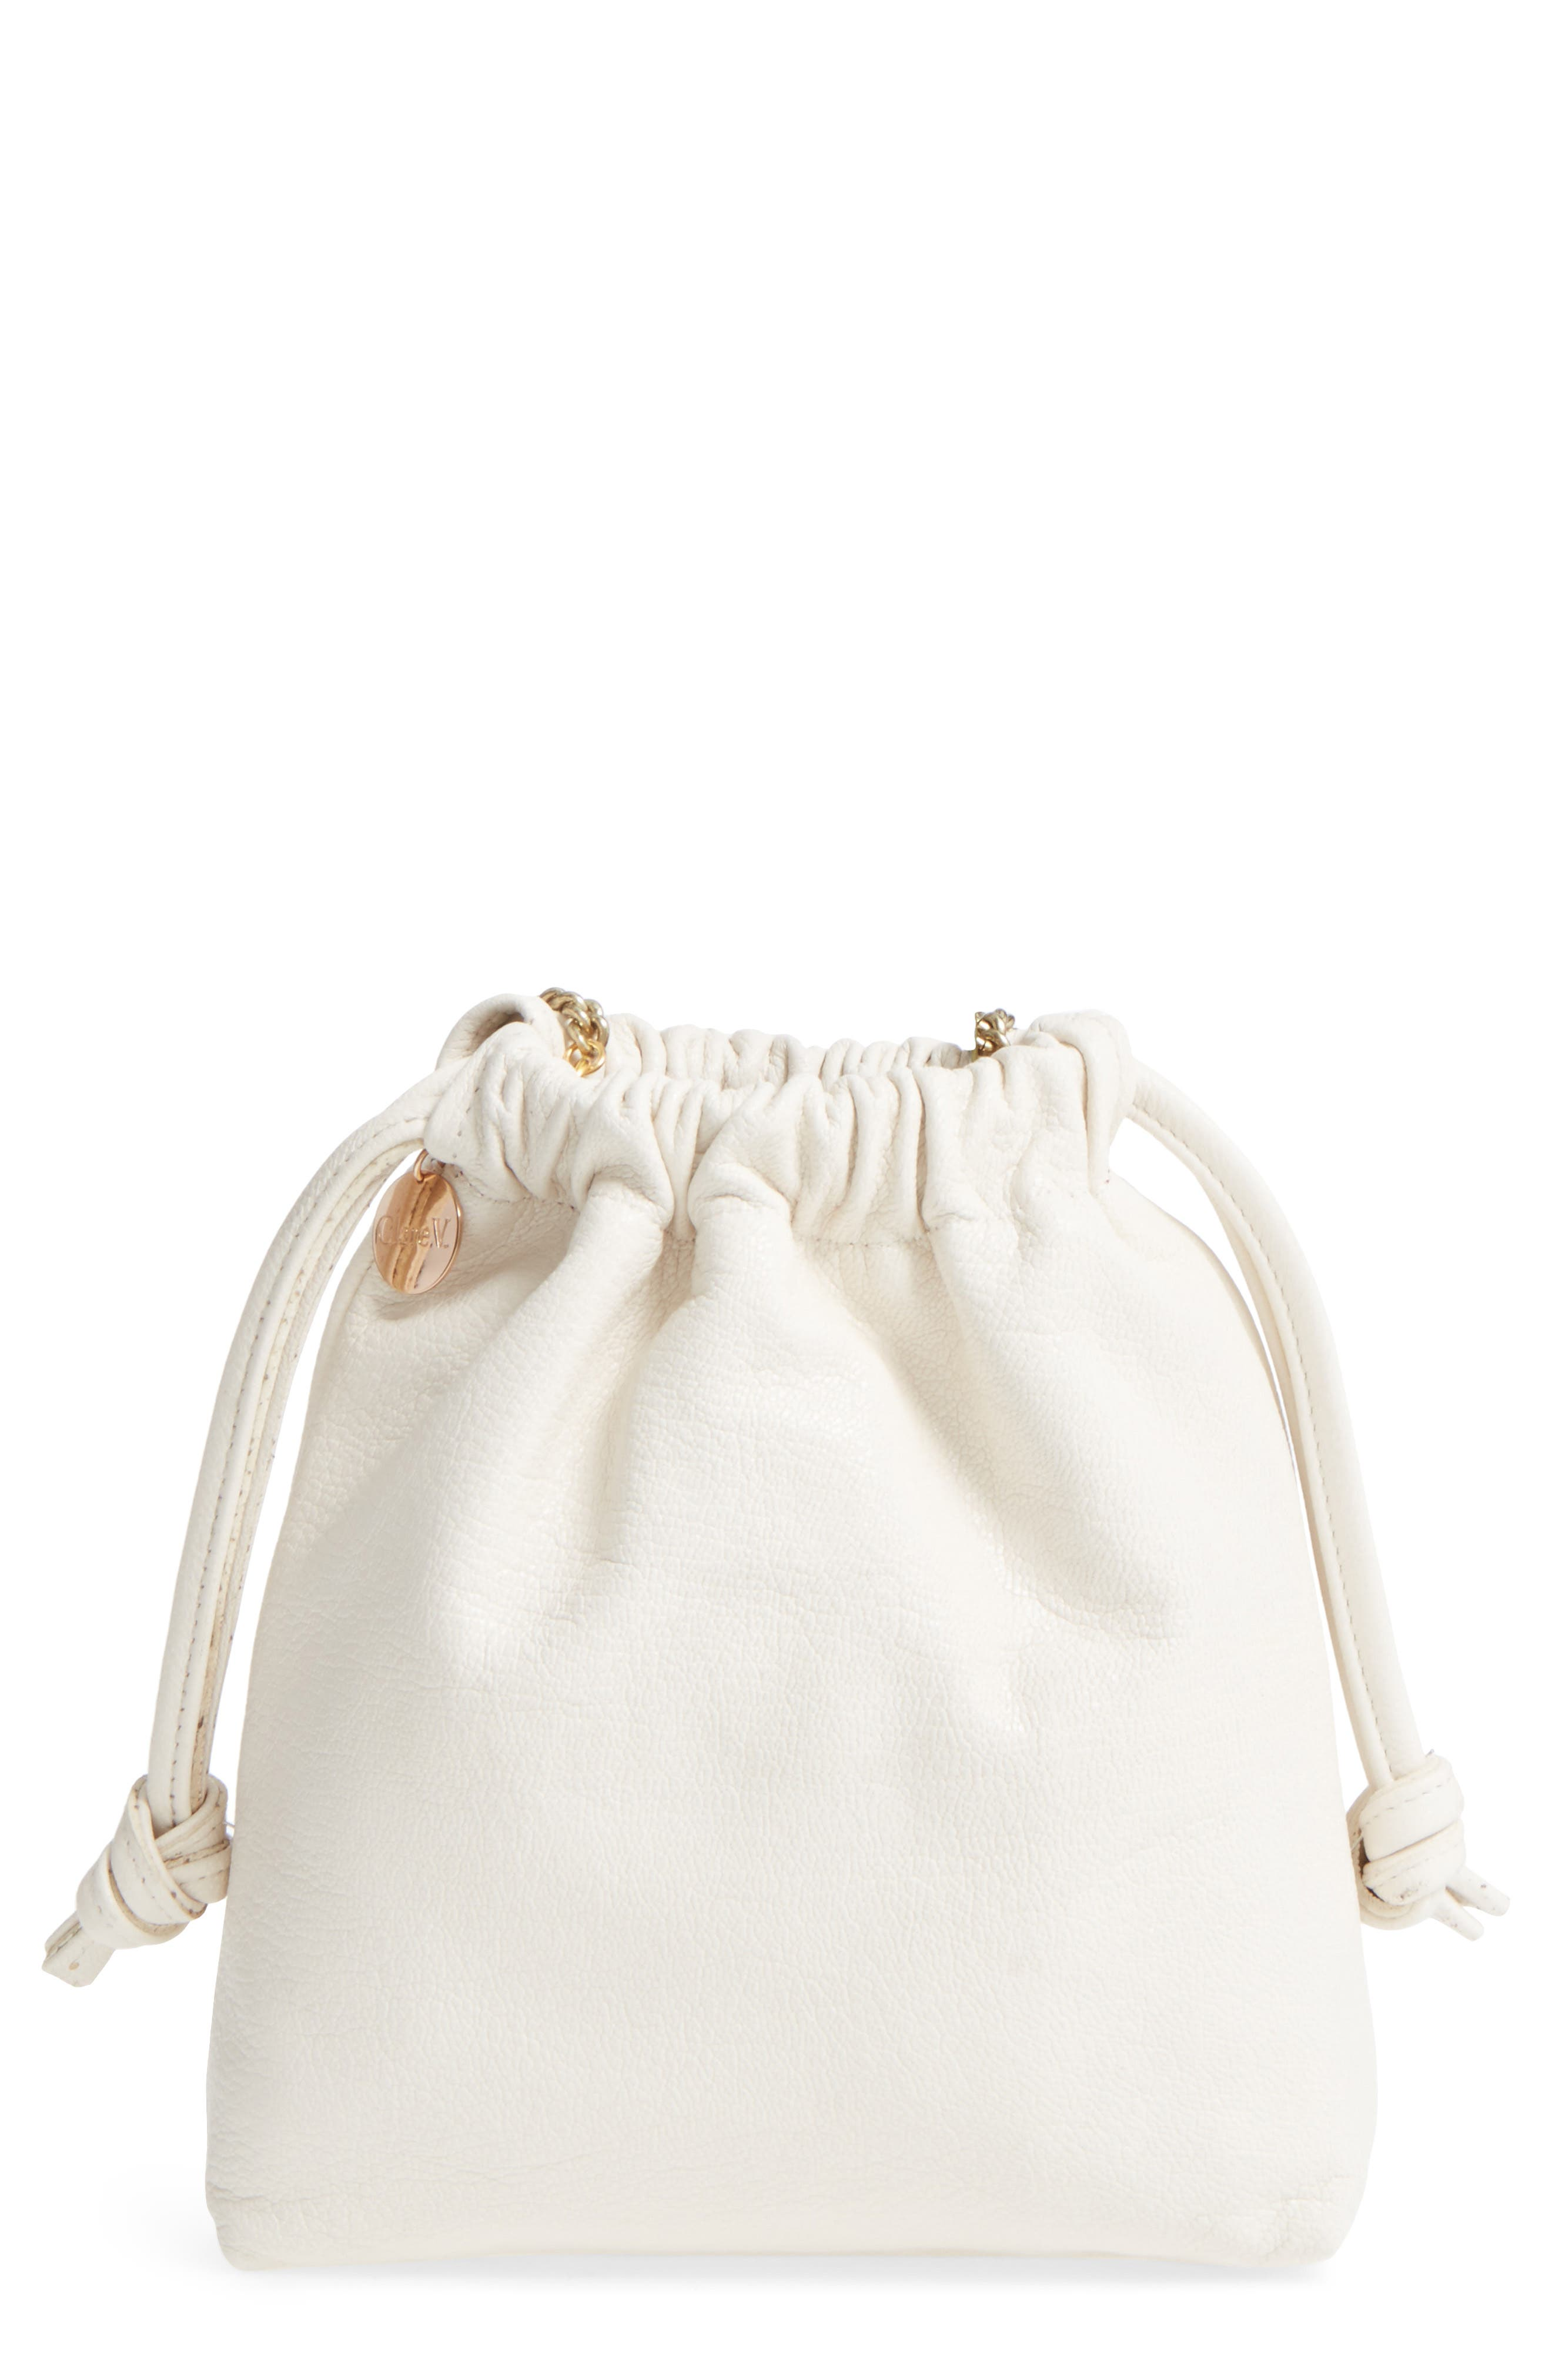 Leather Drawstring Wristlet Pouch,                         Main,                         color, Cream Goat